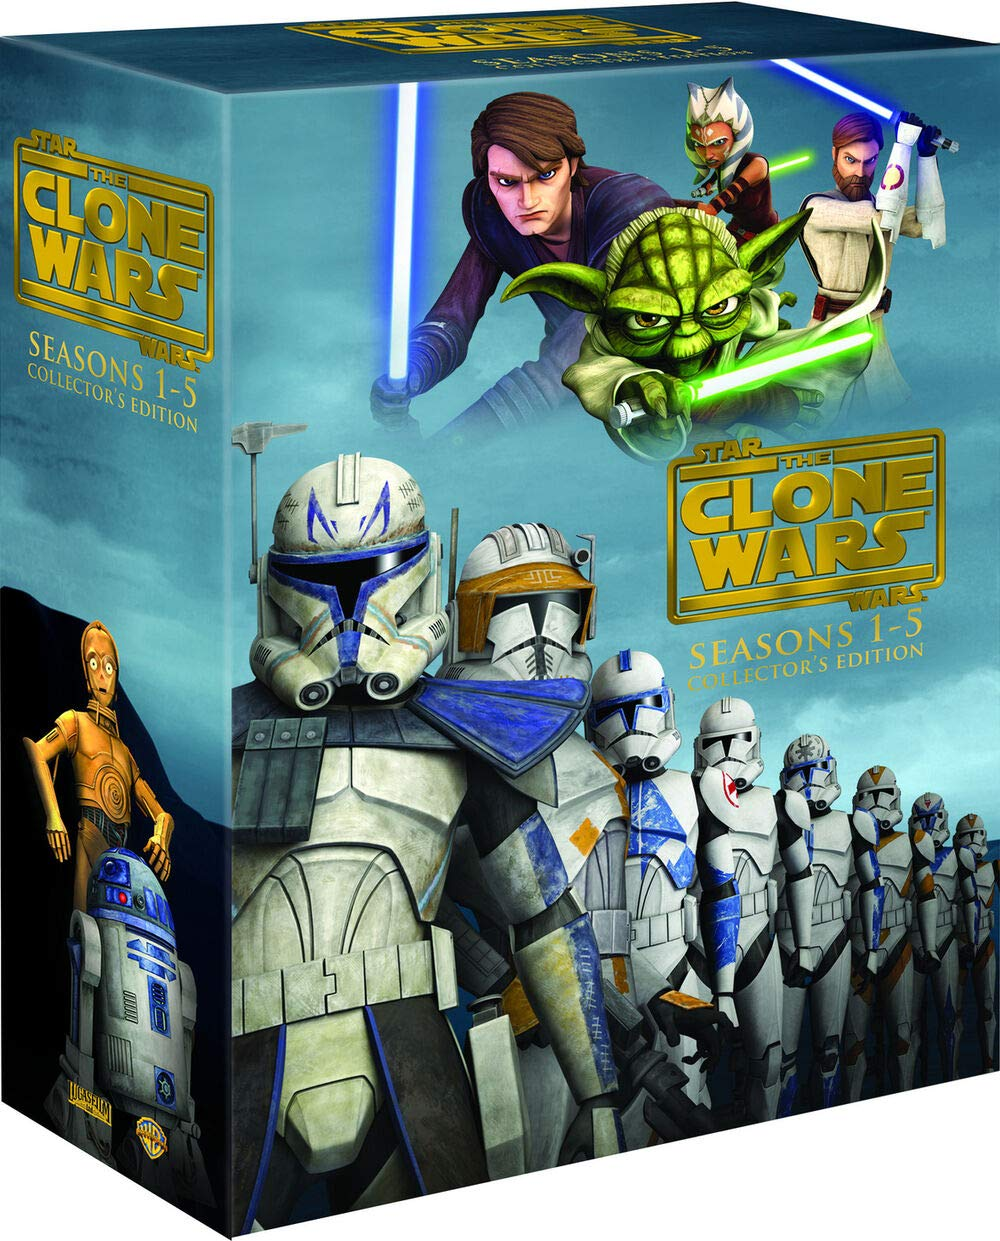 Star Wars: The Clone Wars Seasons 1-5 Collector's Edition DVD